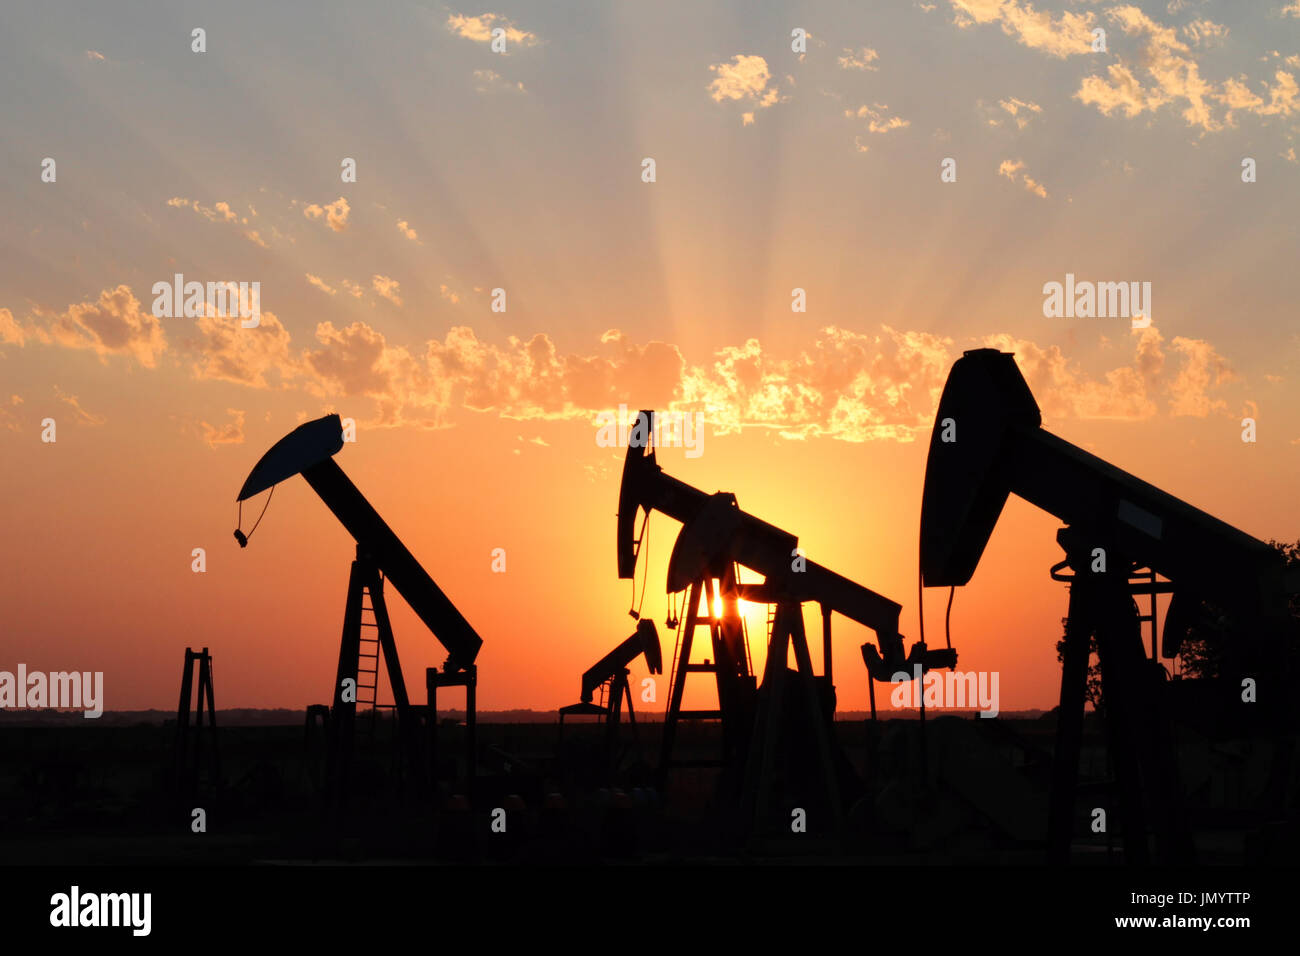 Several oil rigs stand in silhouette with a brilliant sunset in the background. - Stock Image